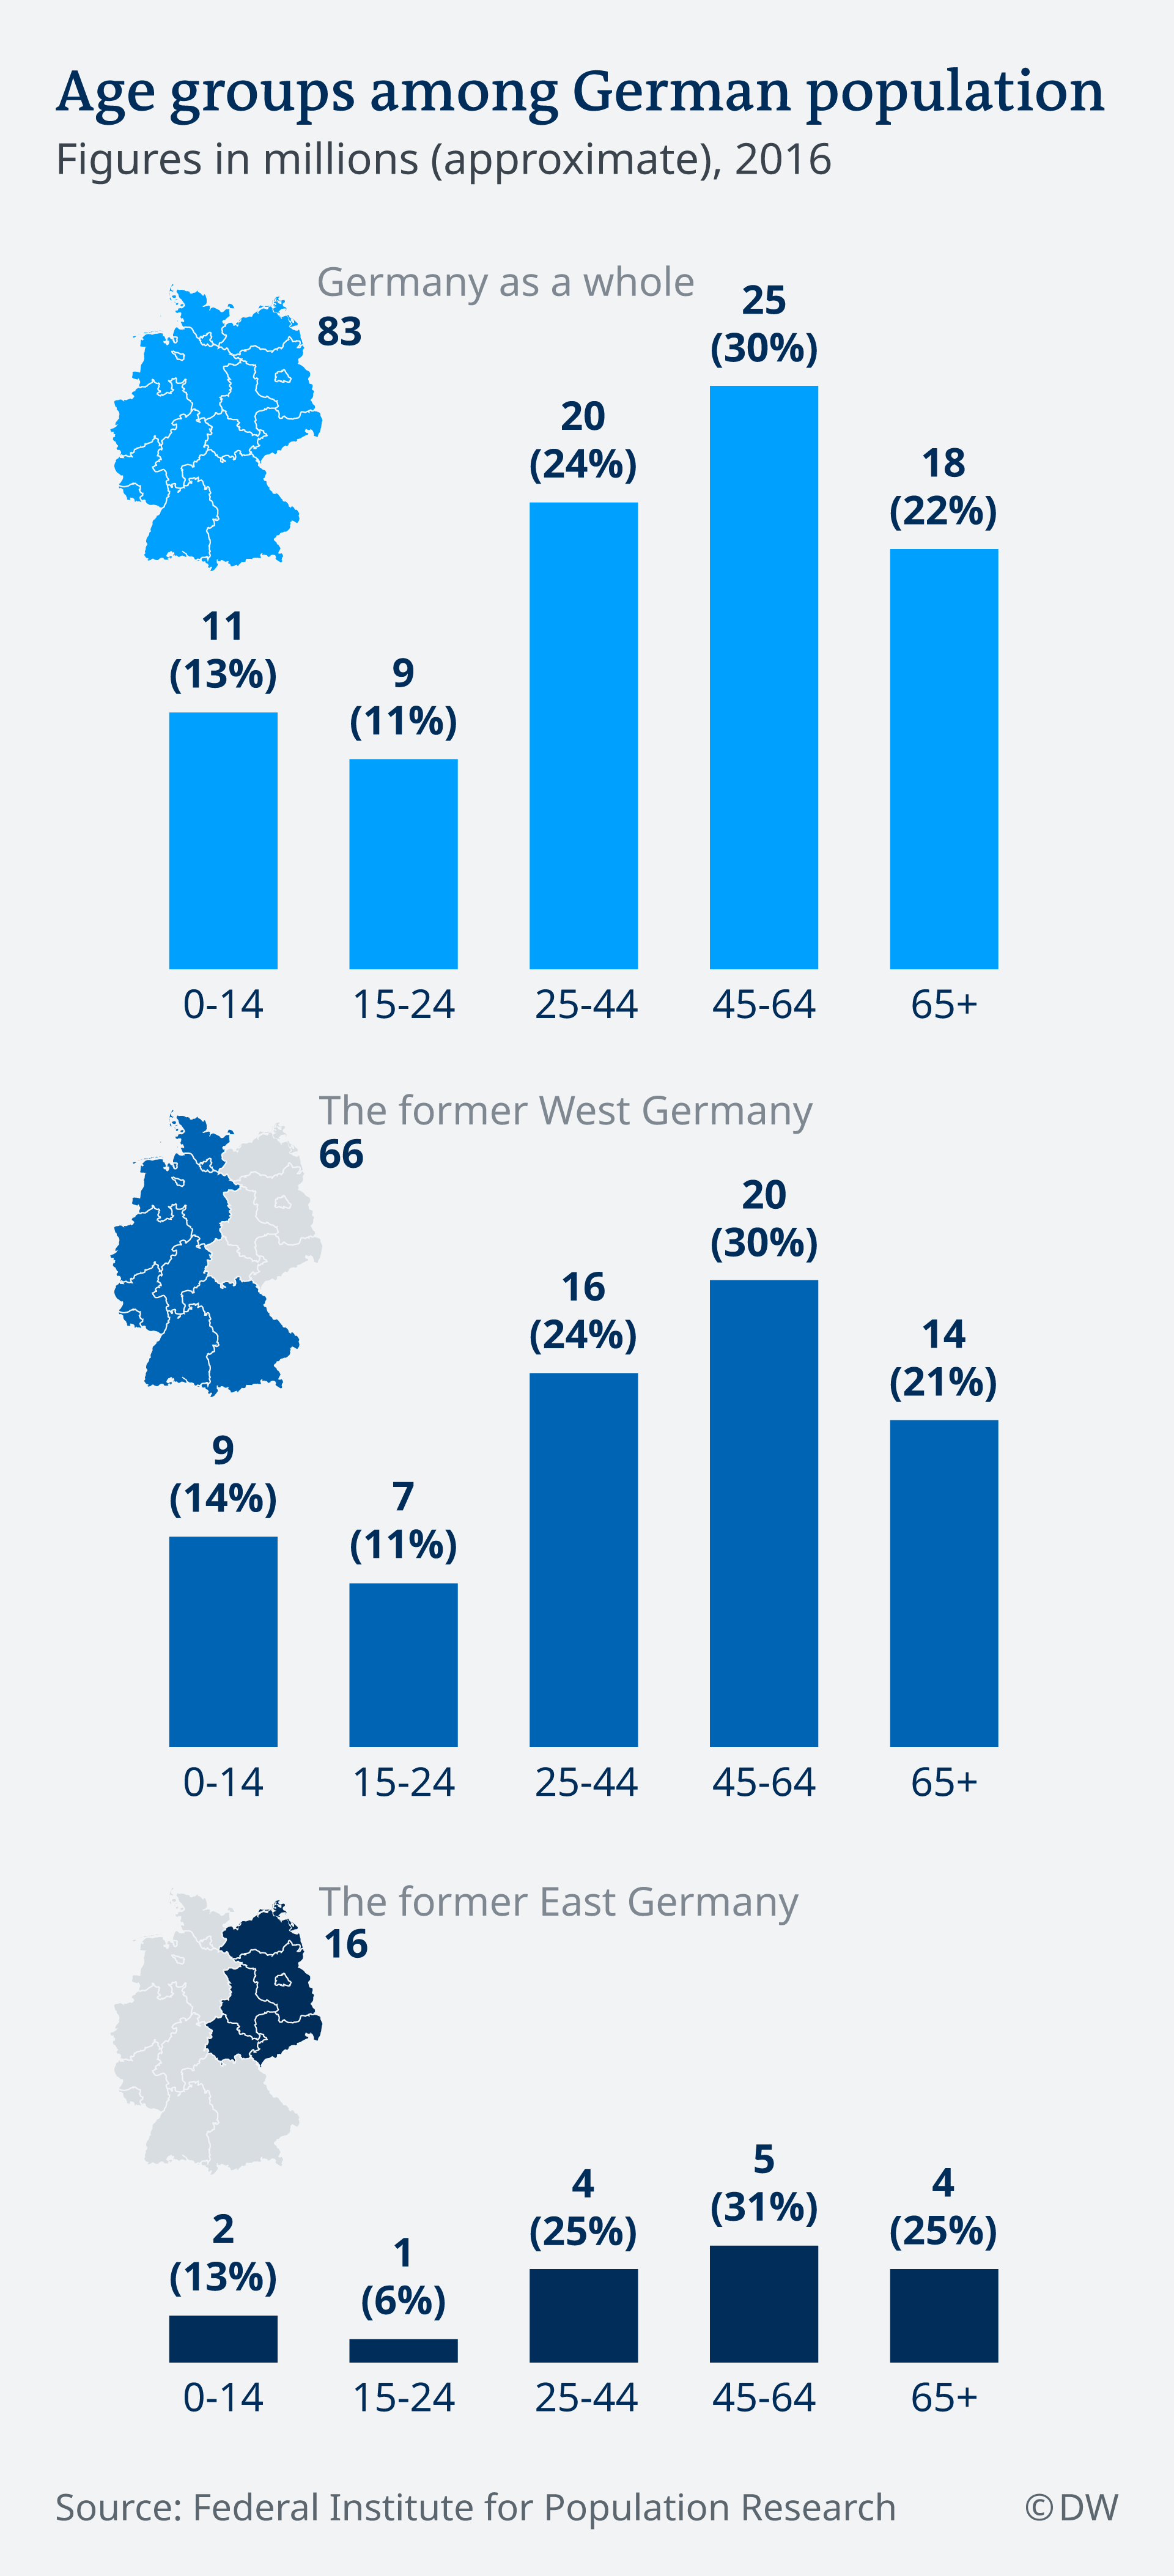 Age groups in the German population